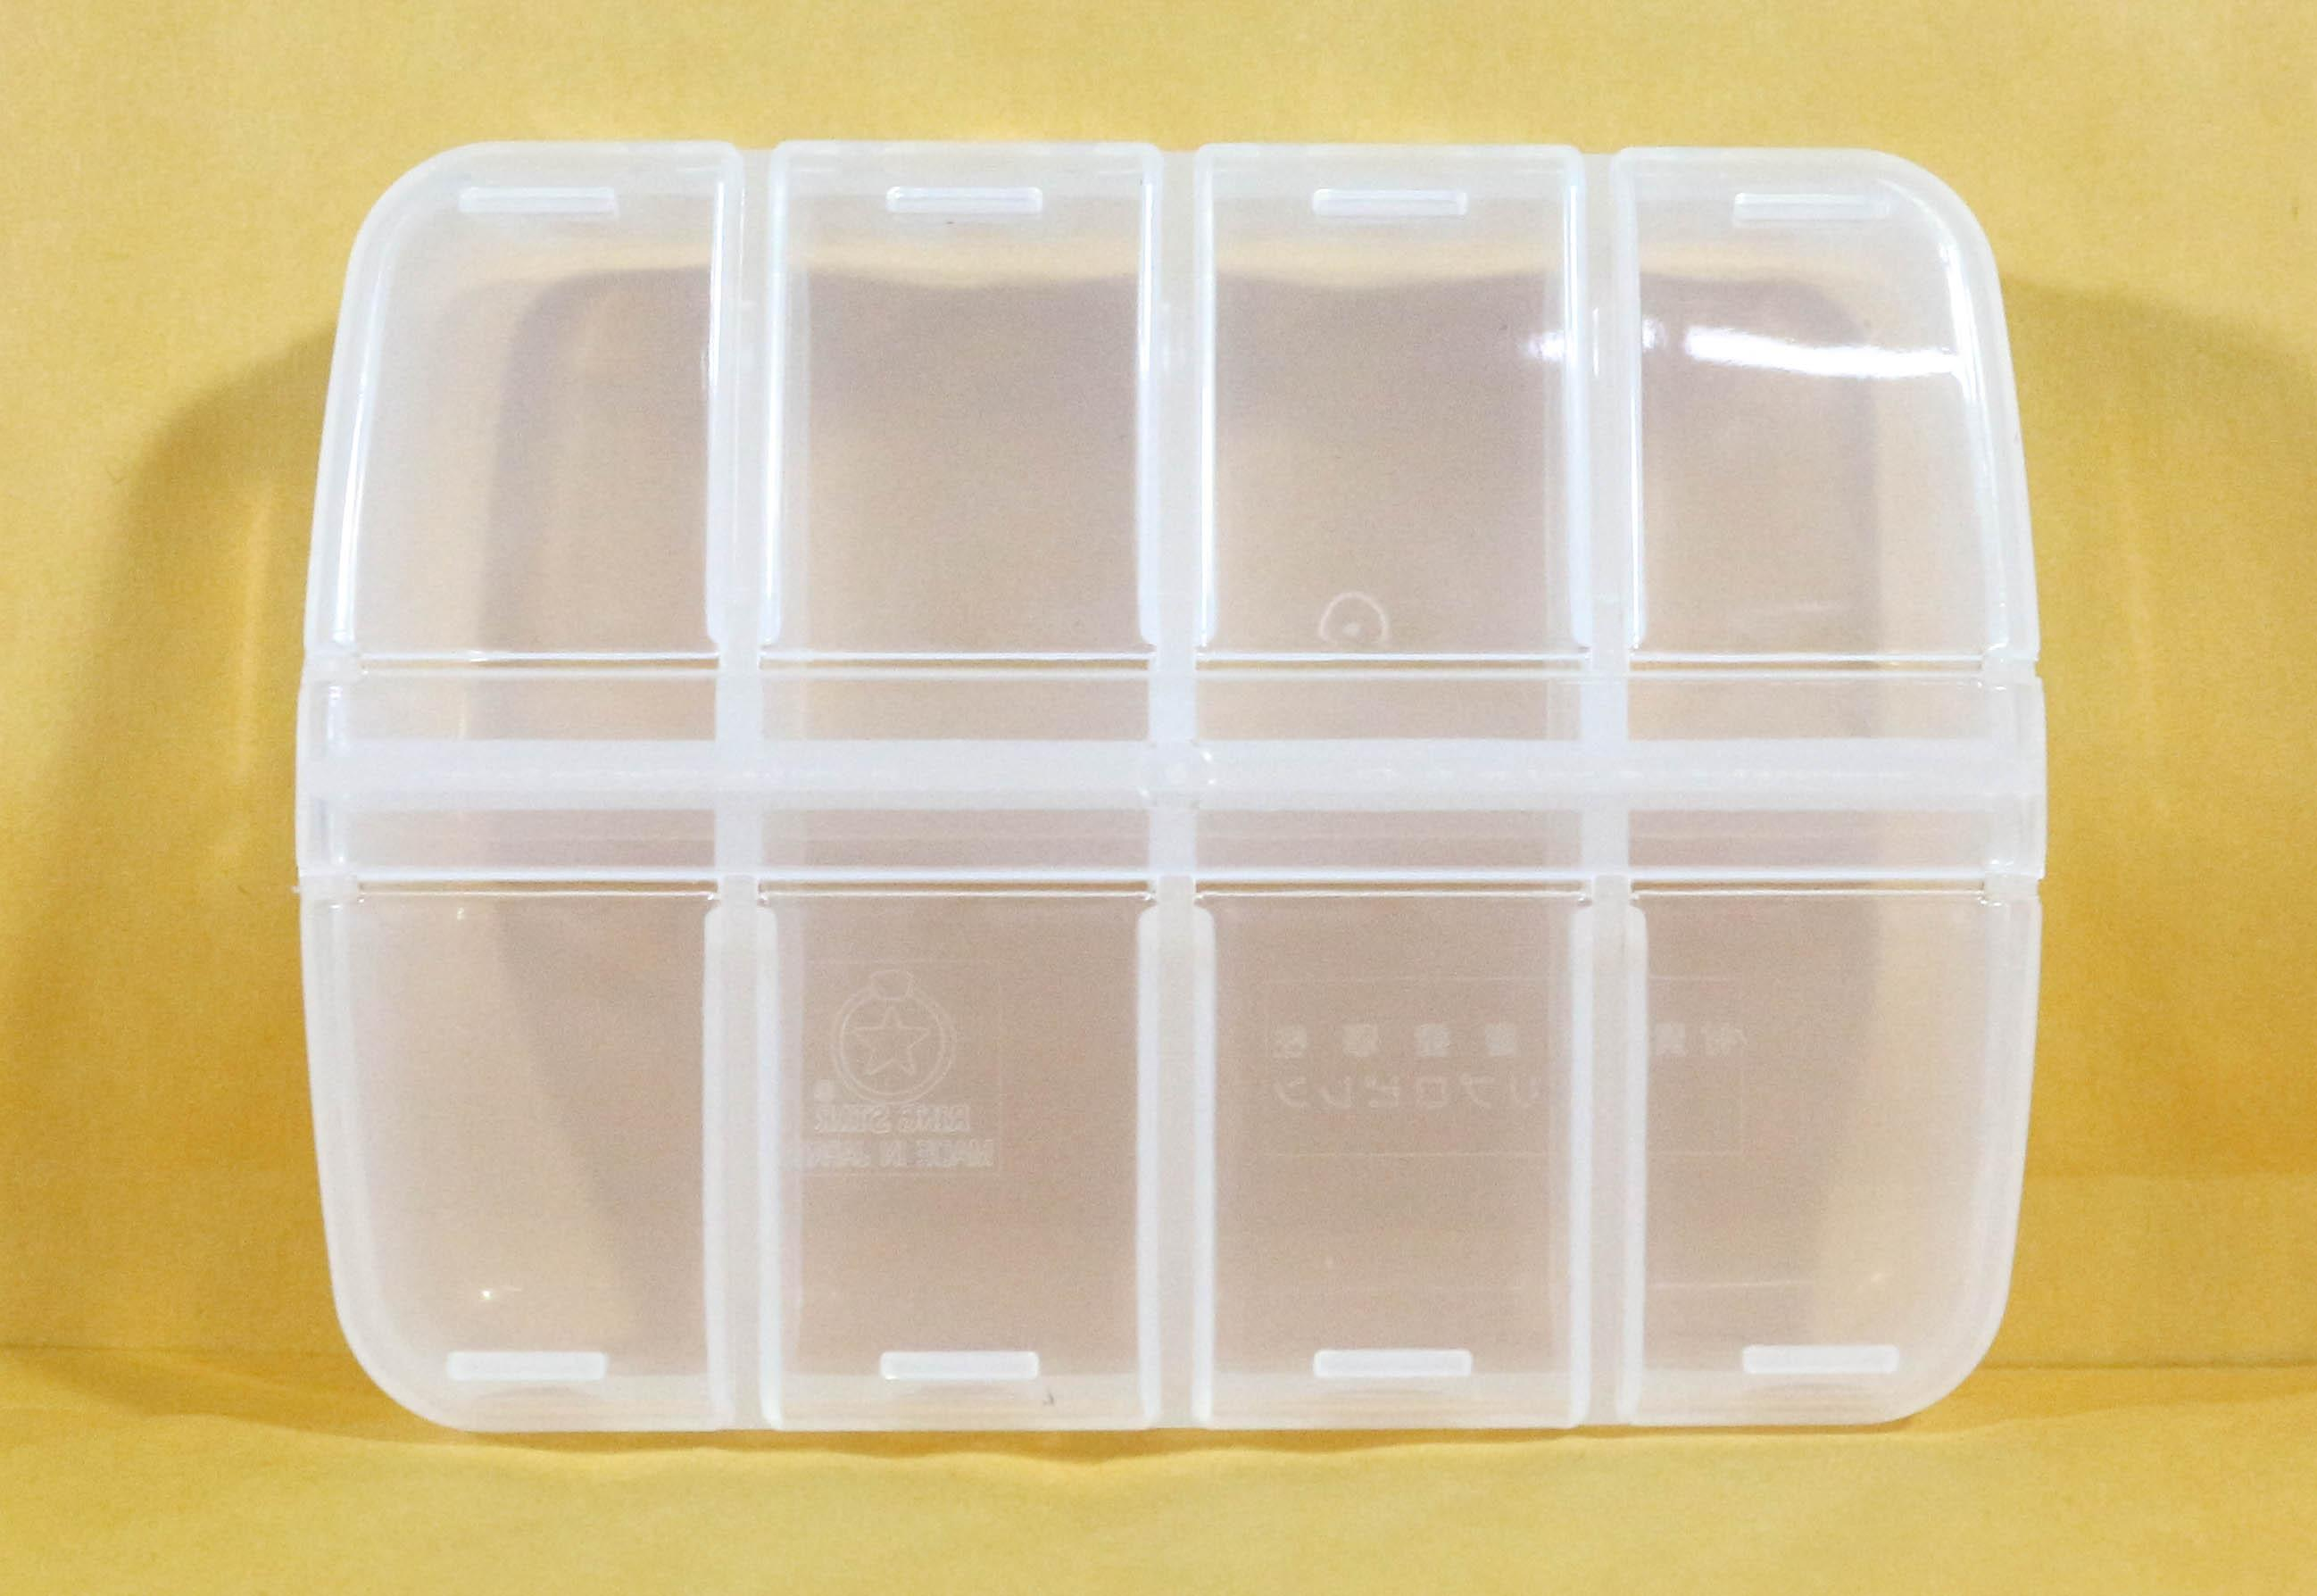 5417 Ring Star PT-110 My Petite Tackle Box 110 x 32 mm Clear